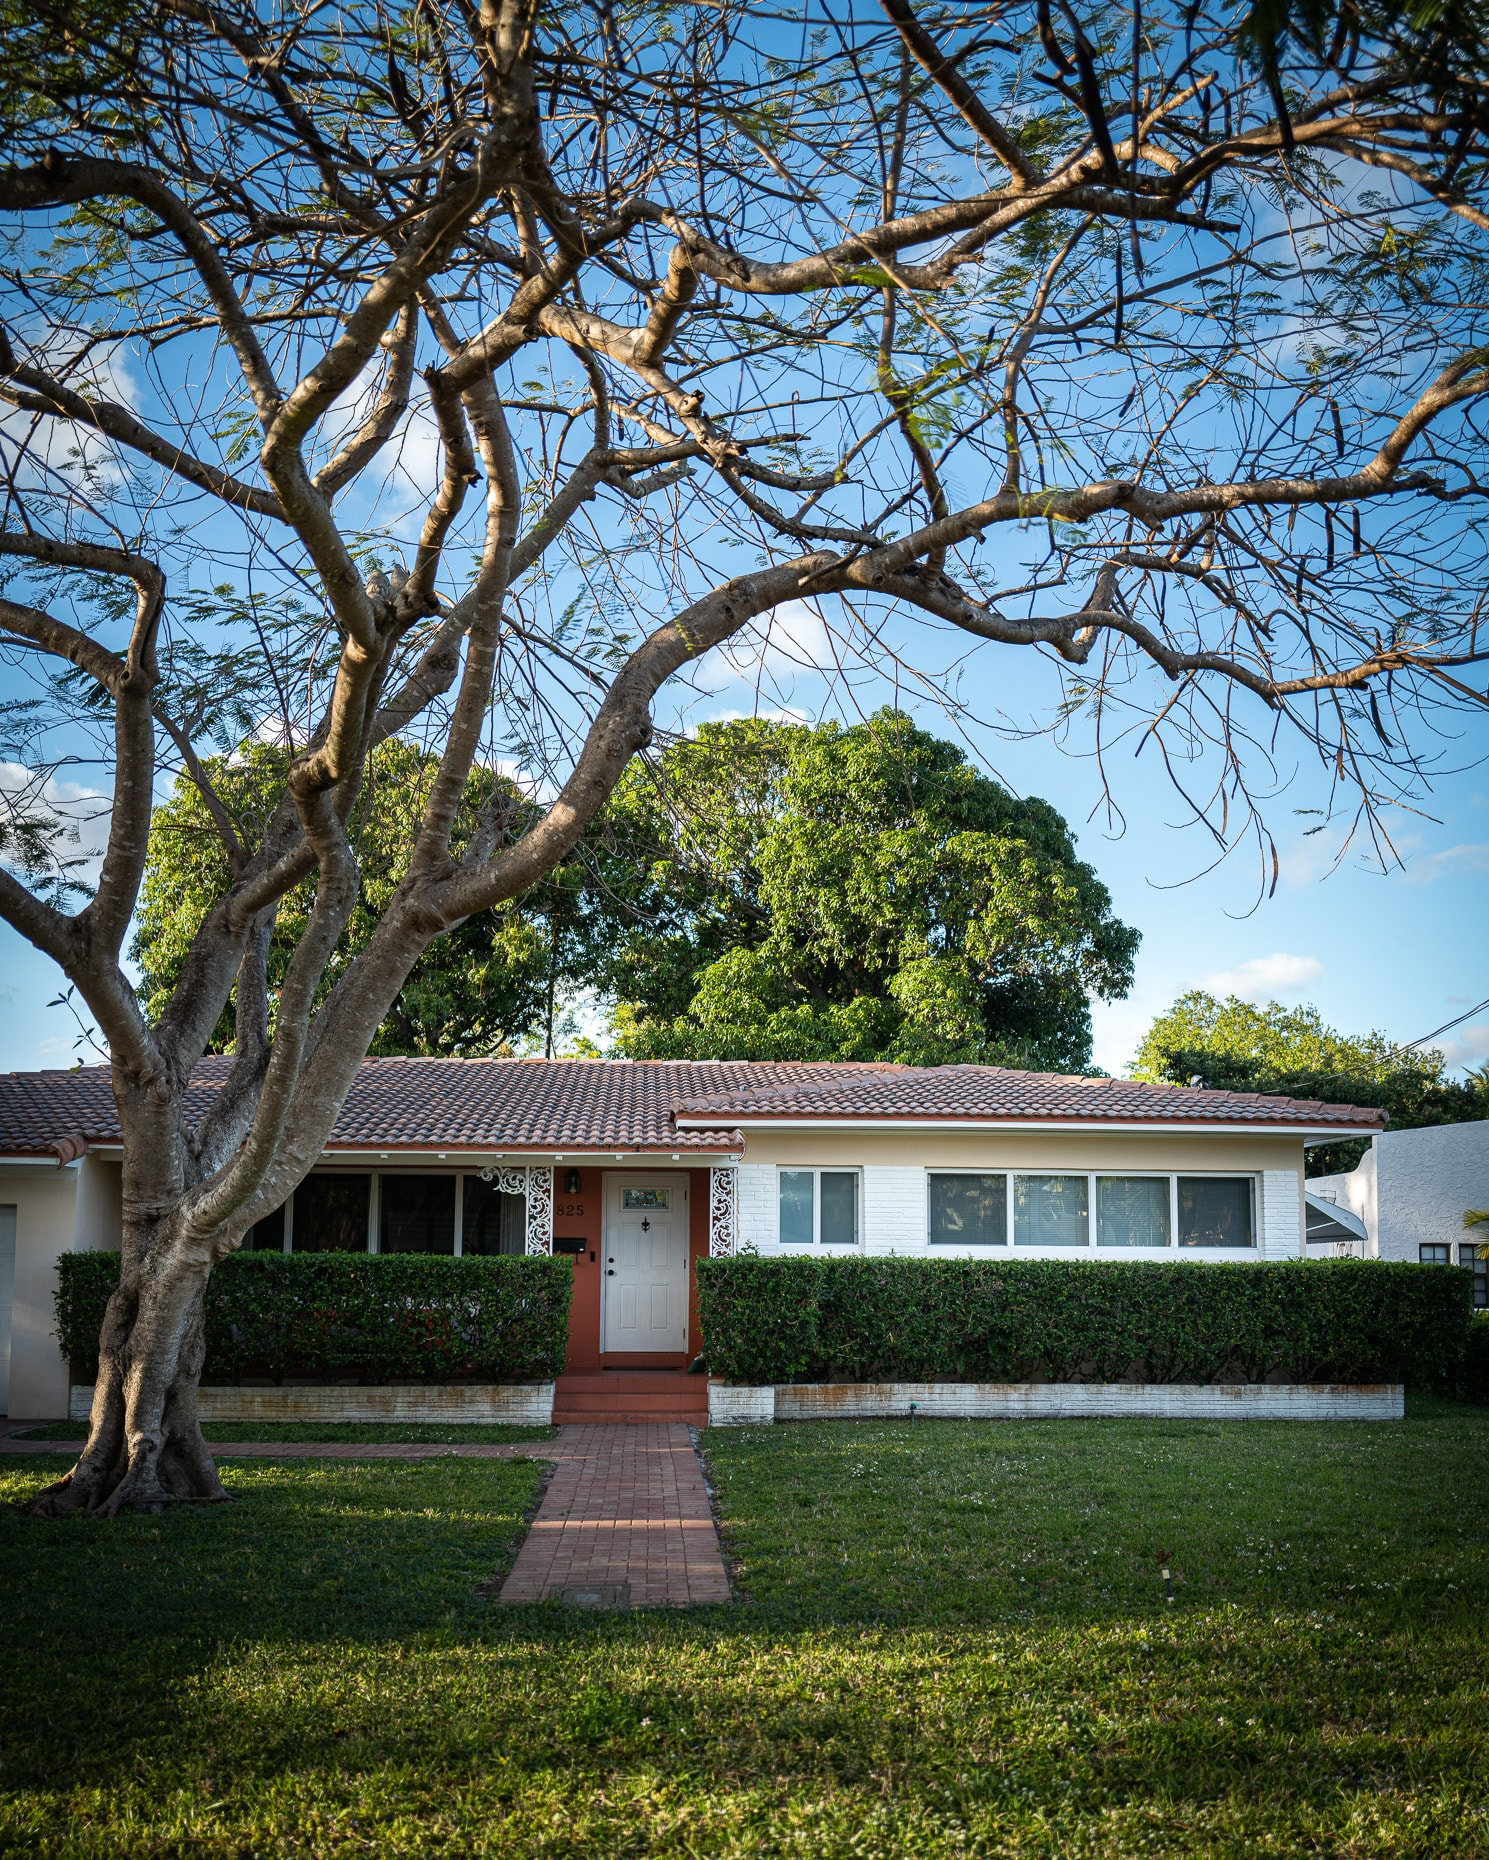 Biscayne Park Home with trees